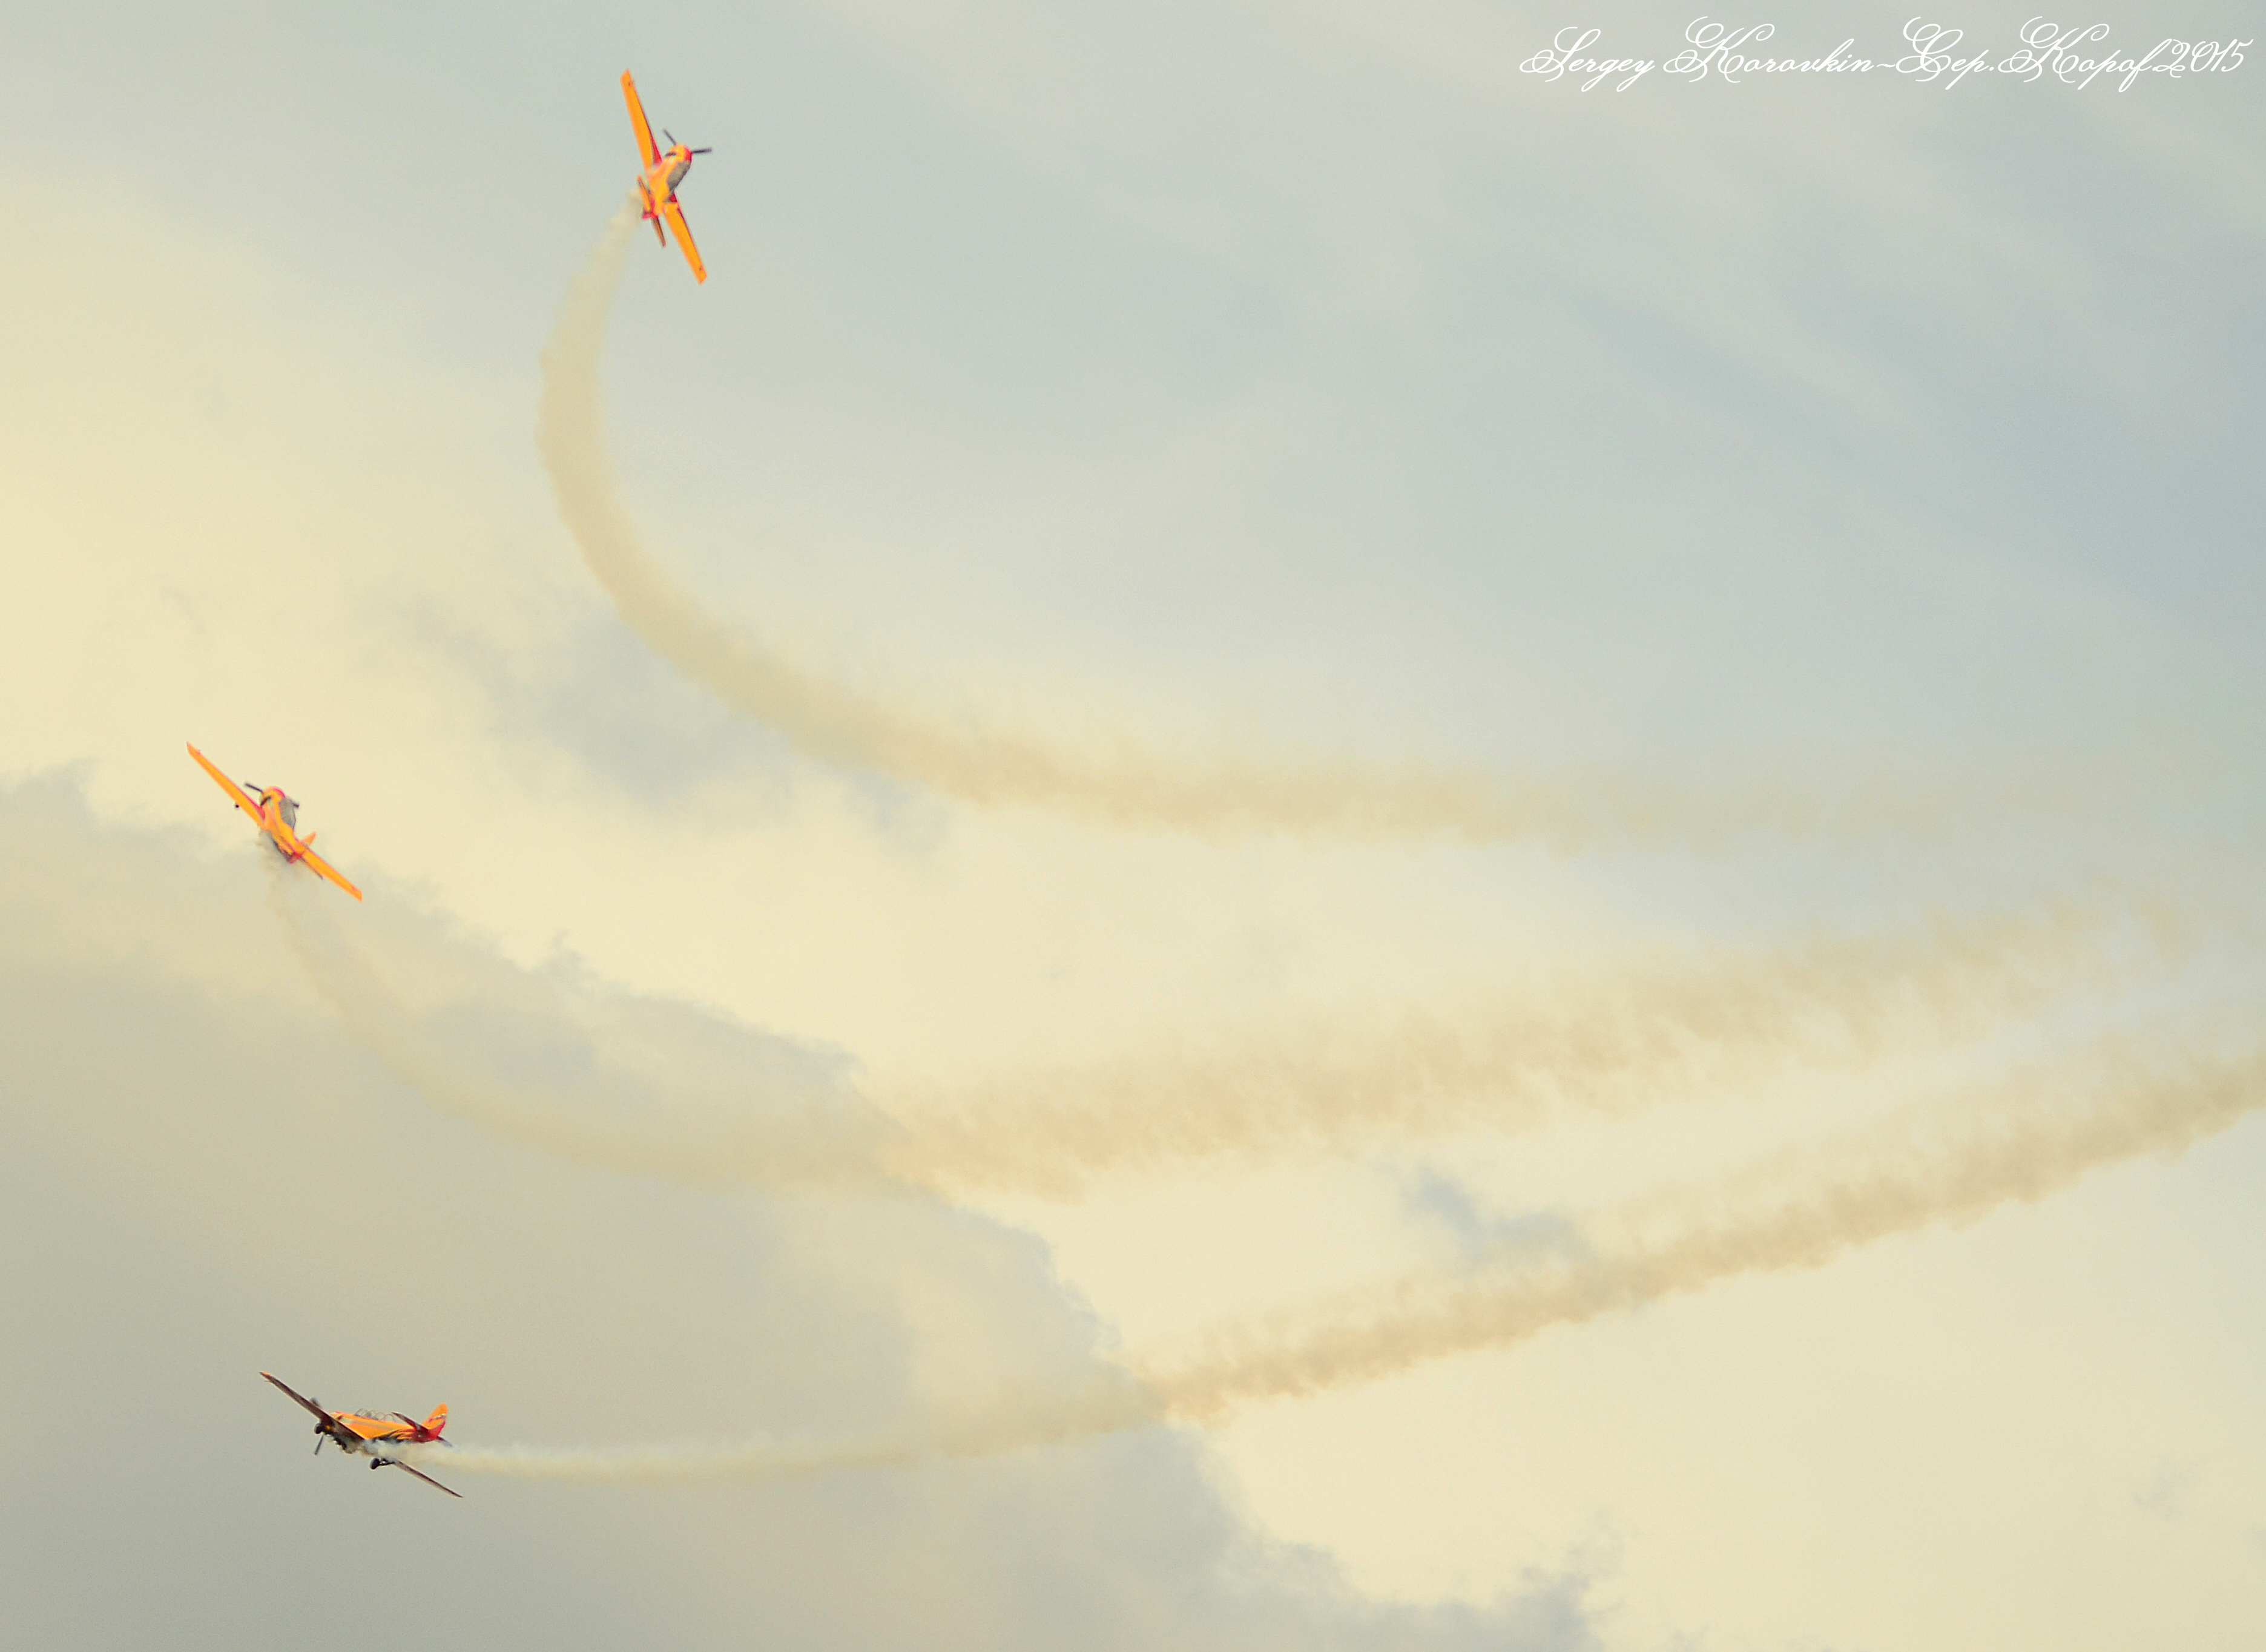 MAKS-2015 Air Show: Photos and Discussion - Page 3 0_17be05_da8ef5b5_orig